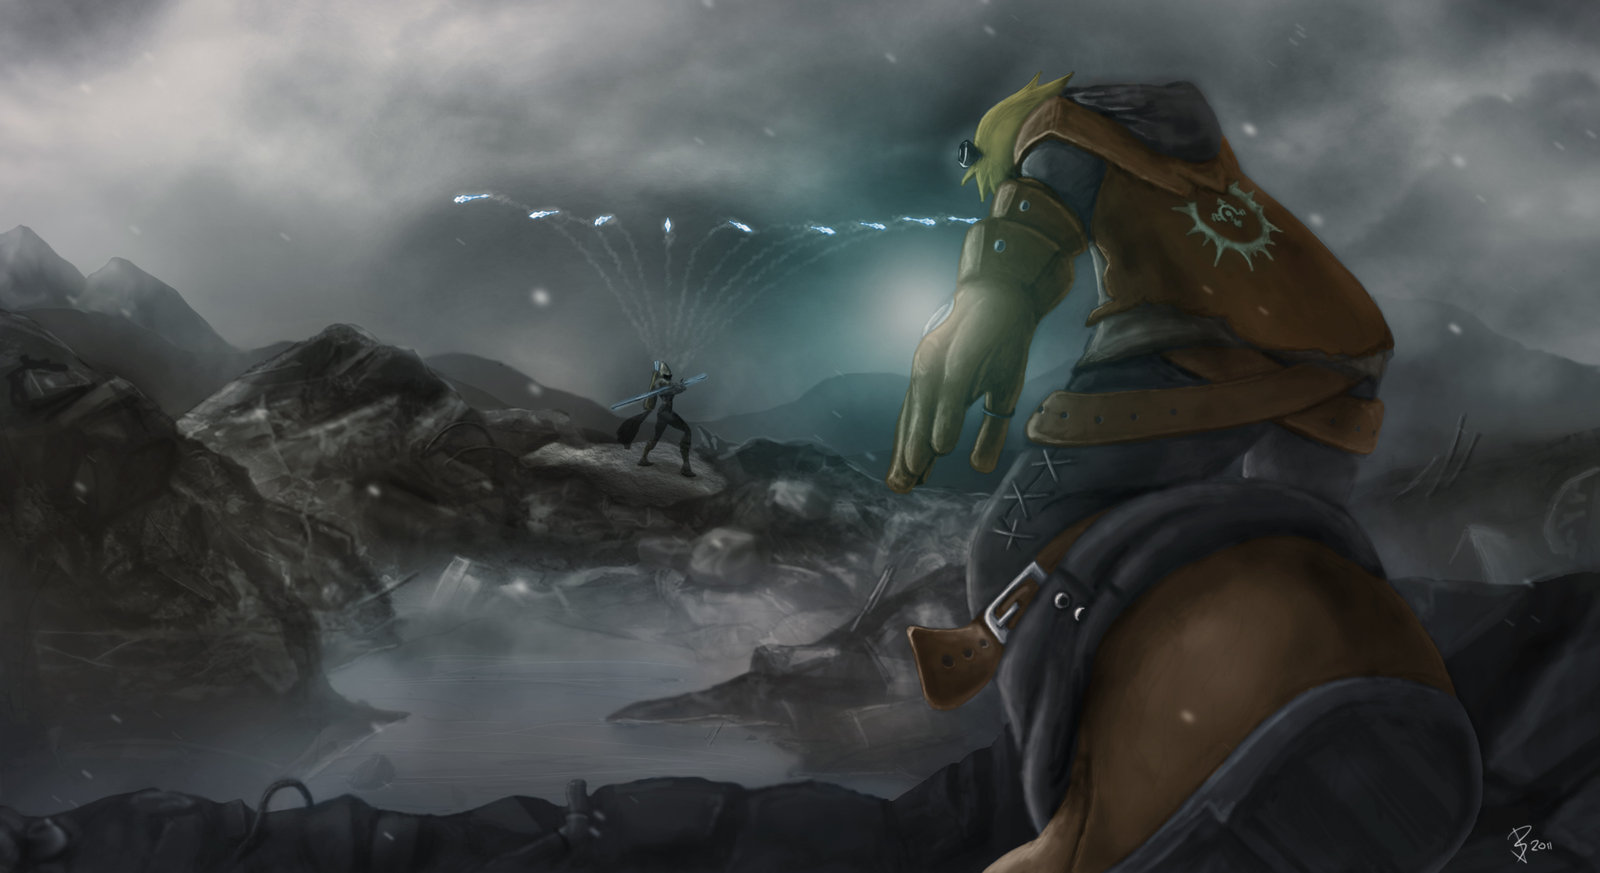 Ashe-vs-Ezreal-color-by-Skullhayate-deviantart-com-on-deviantART-wallpaper-wp4603809-1